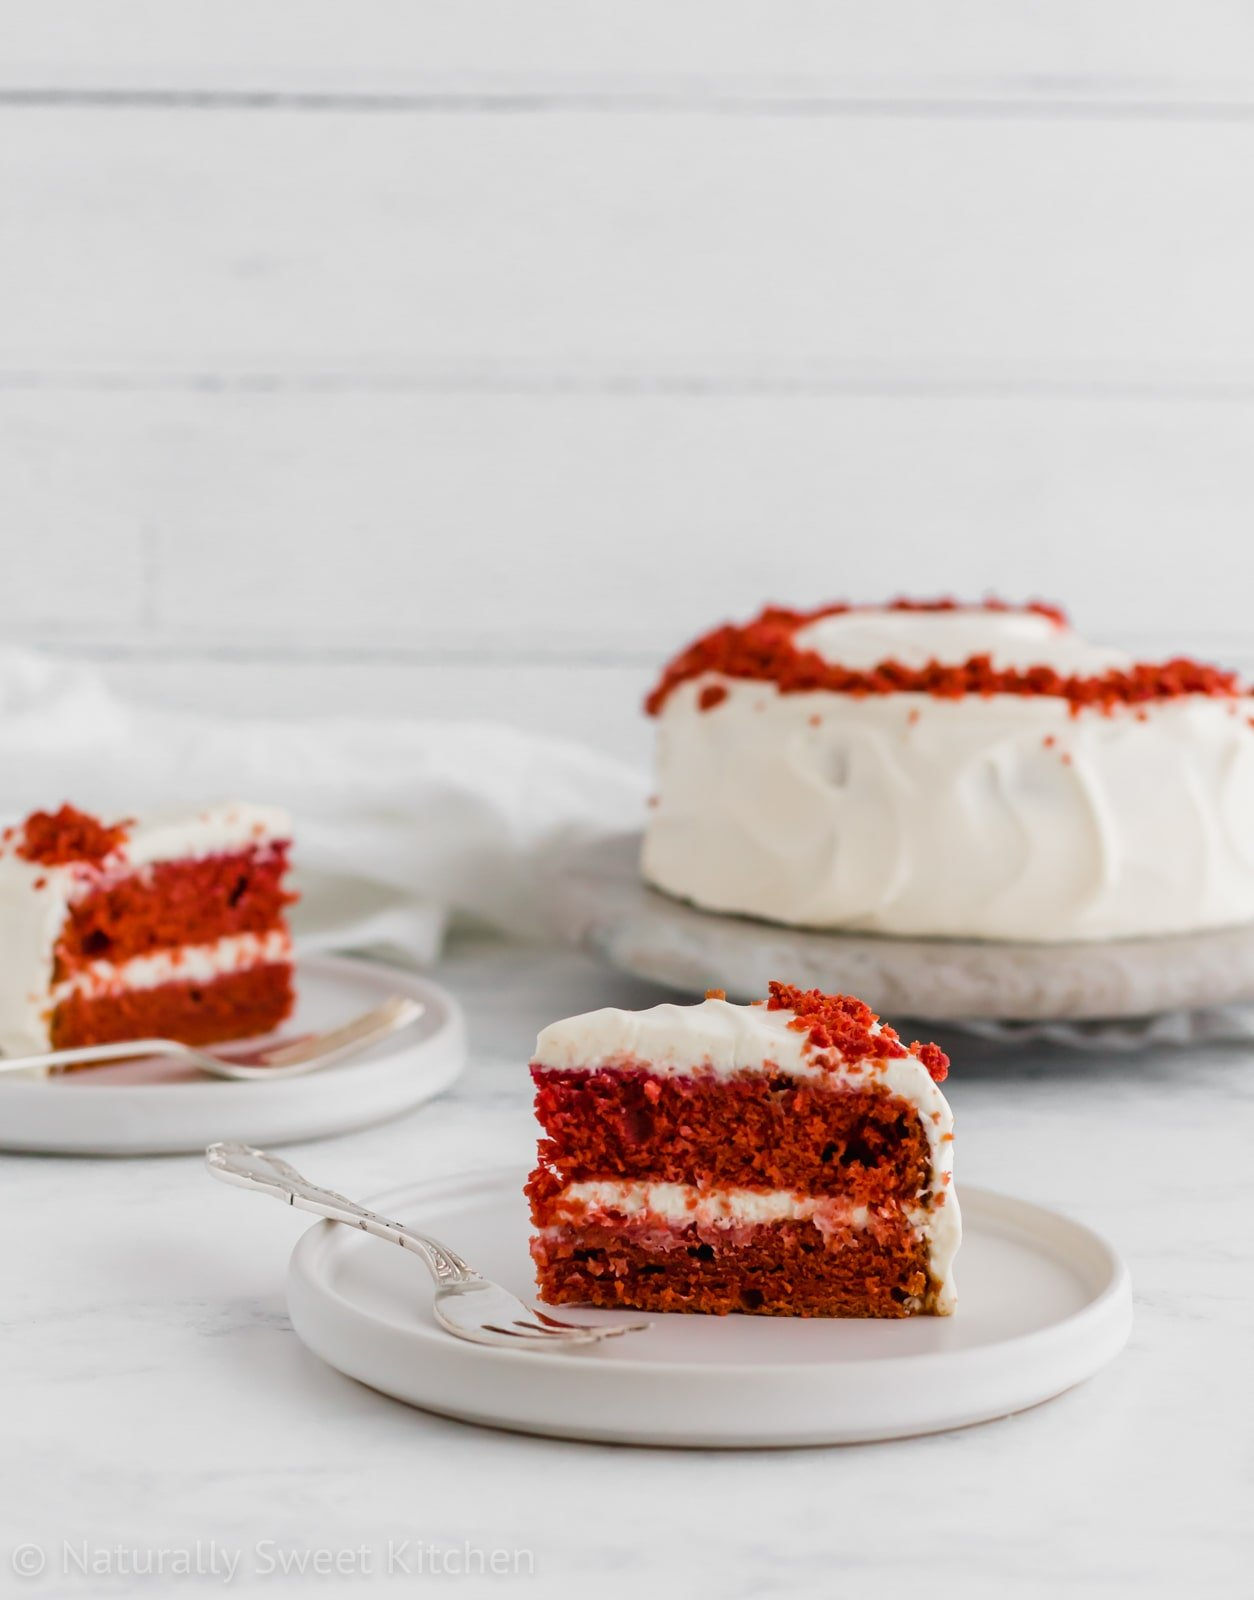 This moist natural red velvet cake recipe features two pint-sized cake layers and an easy cream cheese frosting without powdered sugar! Get the recipe for this refined sugar free cake at naturallysweetkitchen.com. #refinedsugarfree #naturallysweetkitchen #baking #redvelvet #redvelvetcake #Valentinesdessert #dessert #foodphotography #cakerecipe #cake